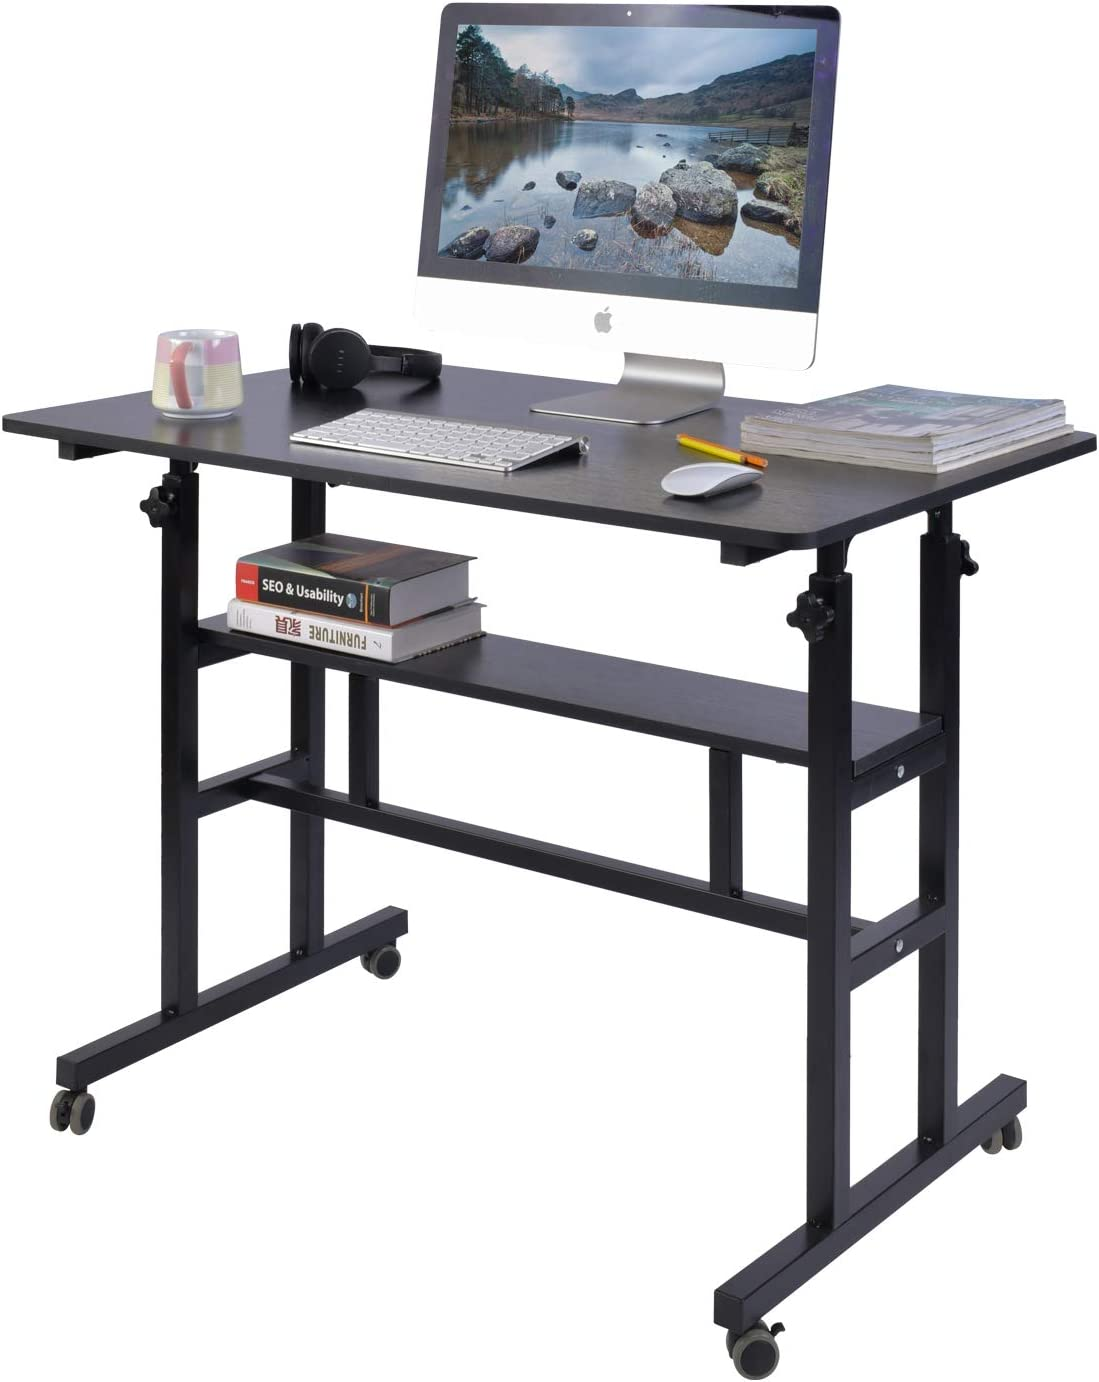 """AIZ Mobile Standing Desk, Adjustable Computer Desk Rolling Laptop Cart on Wheels Home Office Computer Workstation, Portable Laptop Stand Tall Table for Standing or Sitting, Black, 39.4"""" x 23.6"""""""